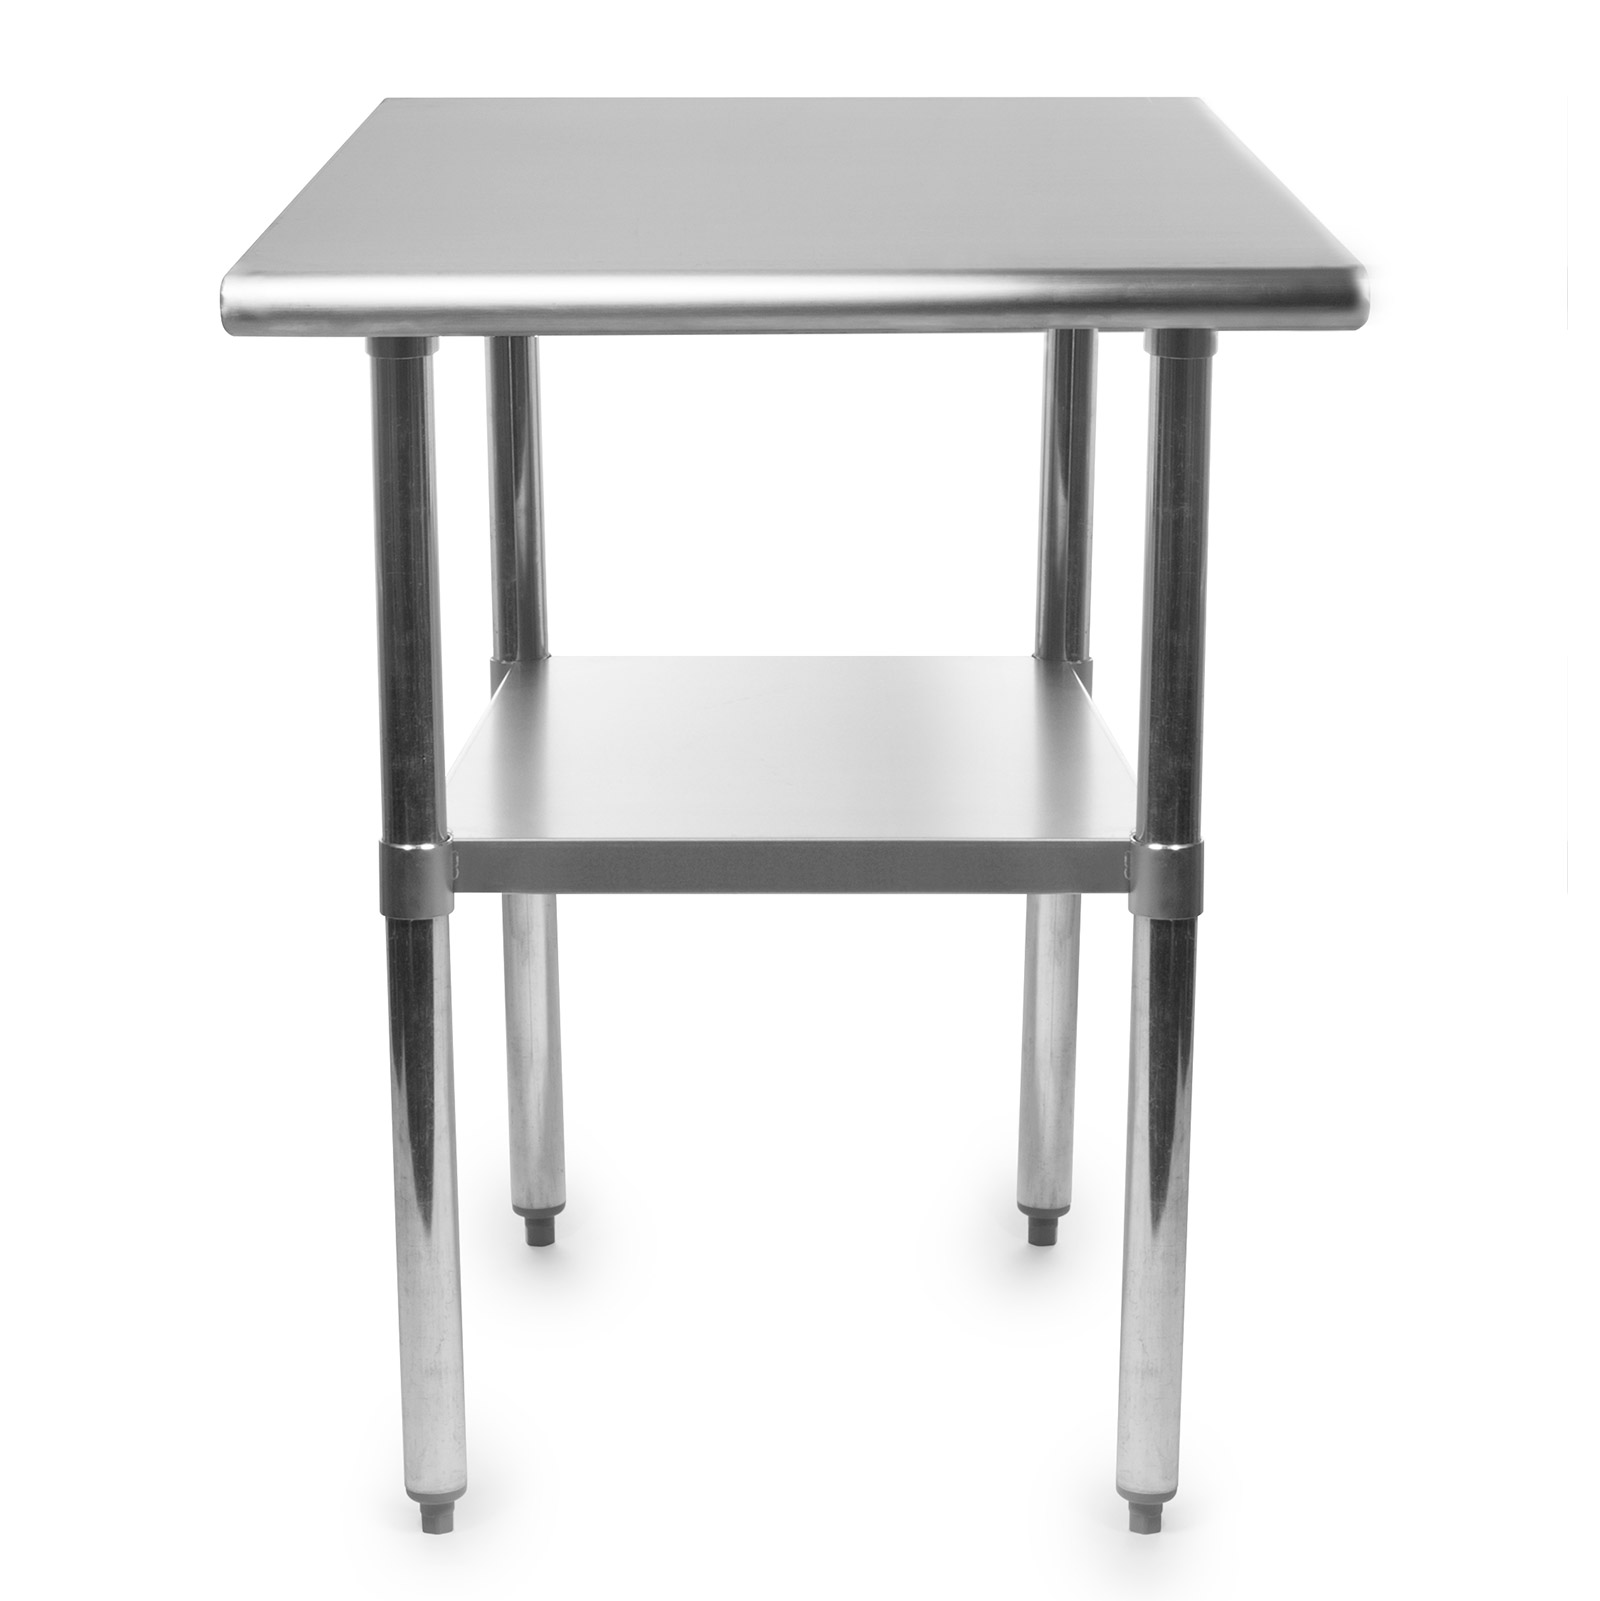 steel kitchen table portable ventilation fan for gridmann nsf stainless commercial prep work 60 in x 30 walmart com